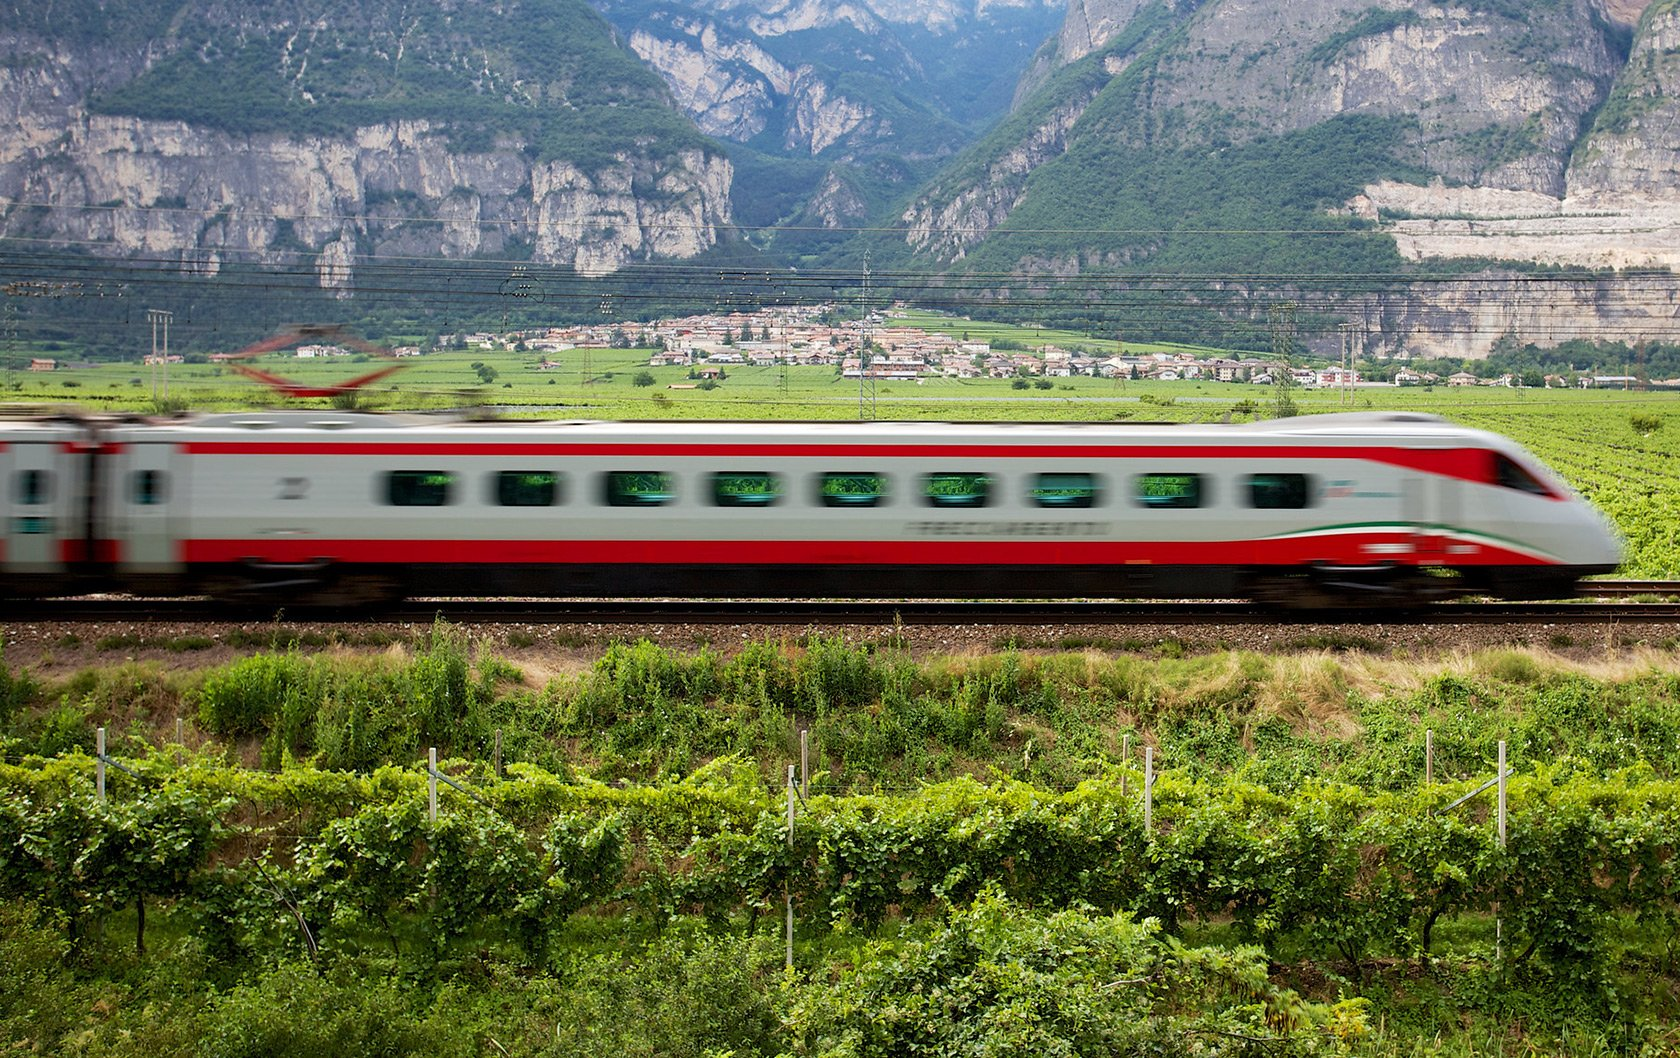 Arriving in Italy just got easier! New direct train service from Rome airport to Florence and Venice.